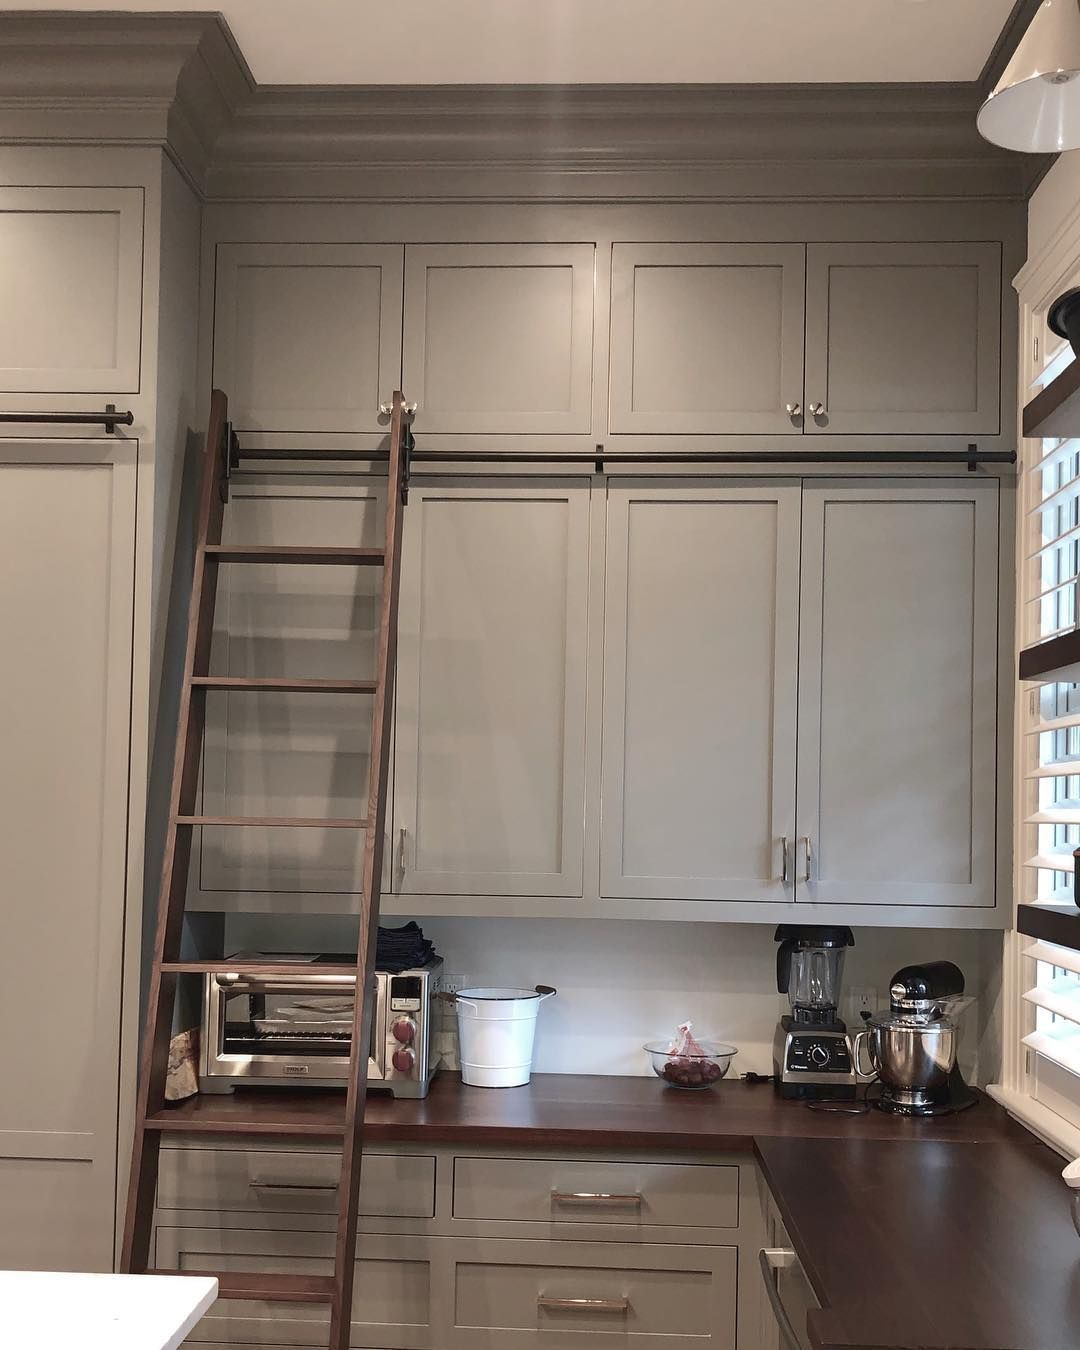 Awd Of Savannah On Instagram Feeling Short We Ve Got A Ladder For That Customcabinets Savannahga Libraryl With Images Custom Cabinets Library Ladder Savannah Chat